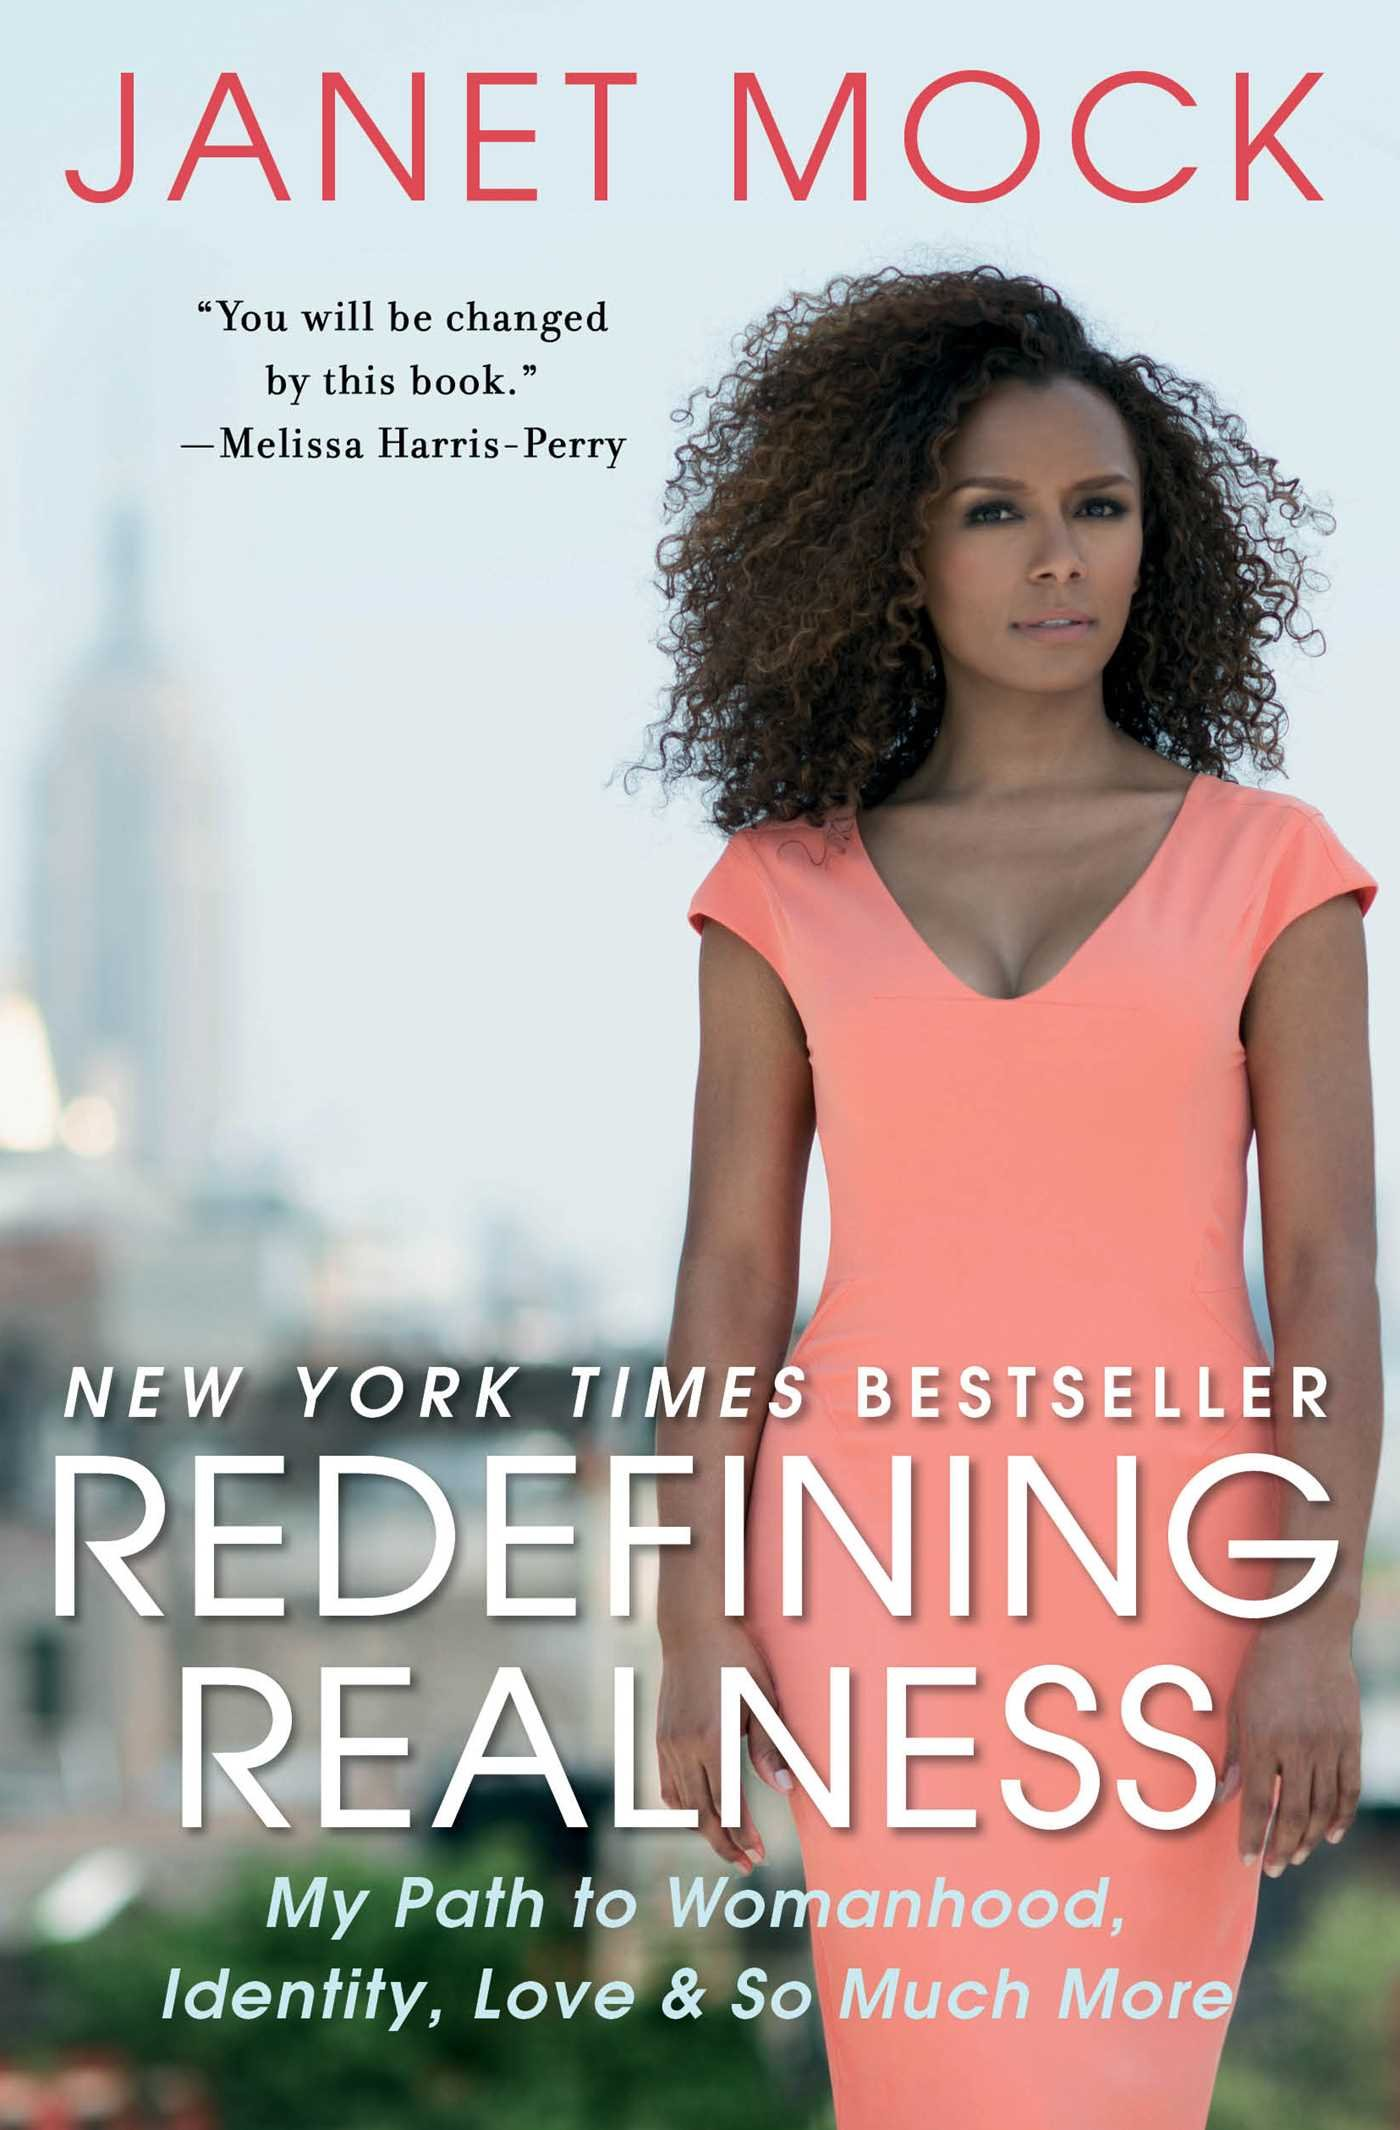 Redefining Realness by Janet Mock, 2017-2018 CCBP featured book